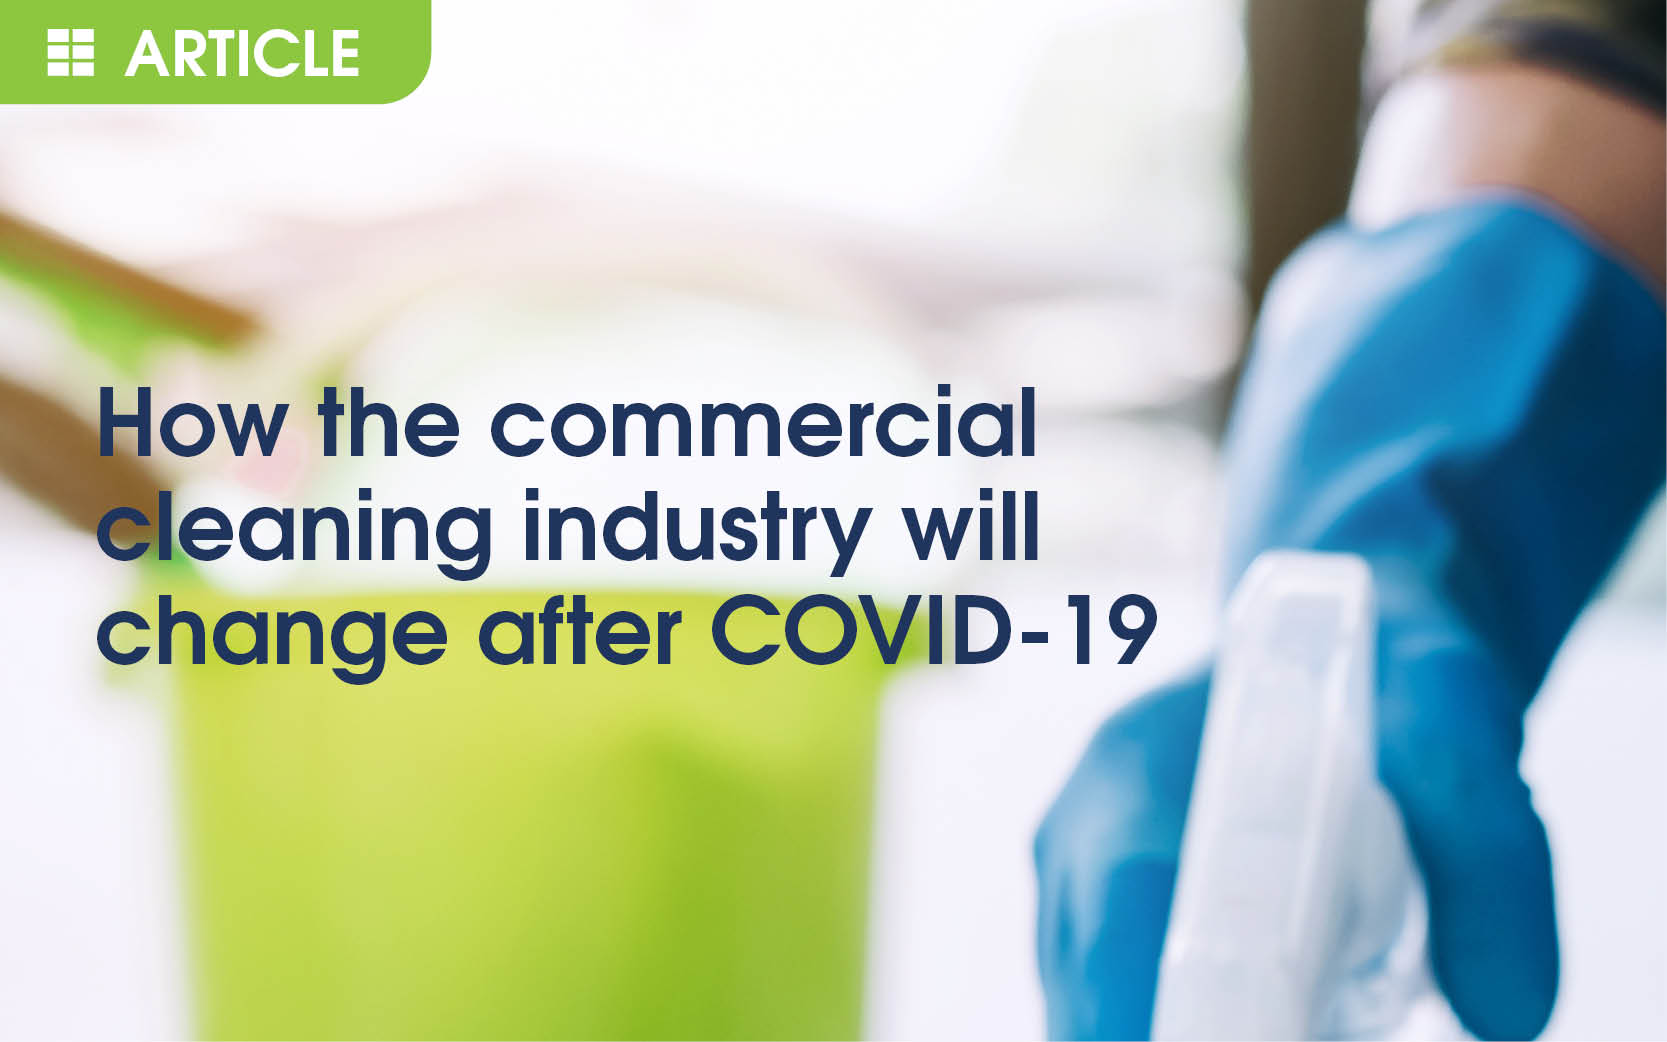 How the commercial cleaning industry will change after COVID-19